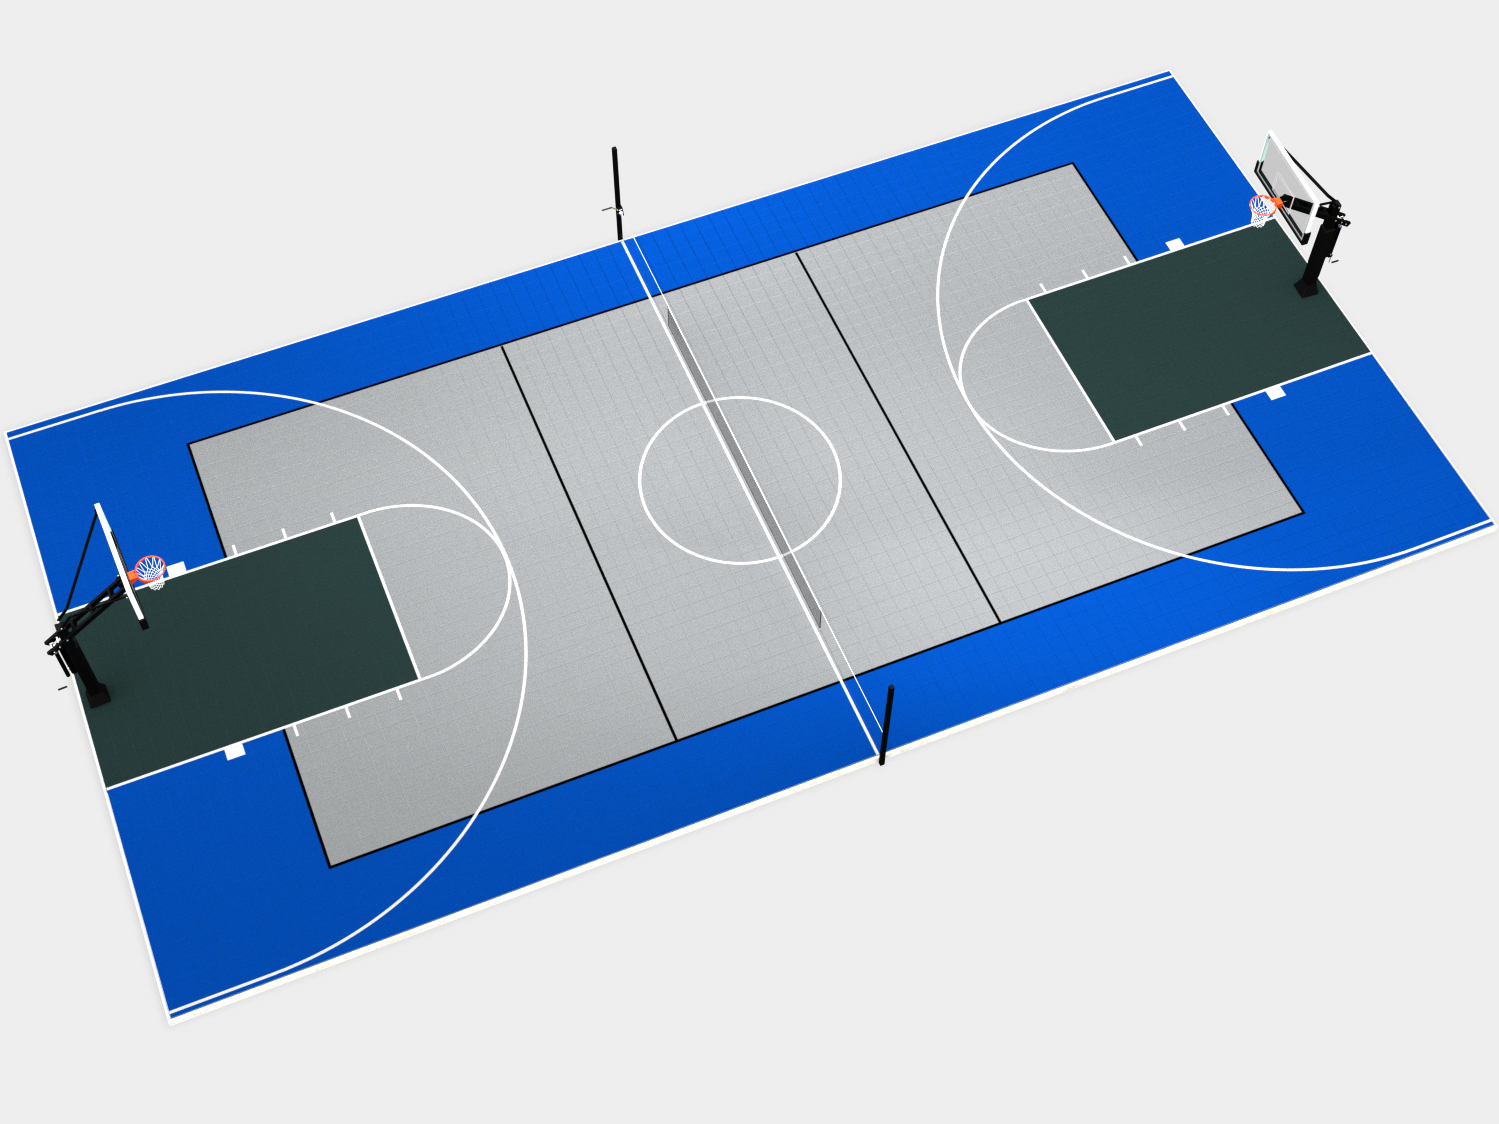 80' x 40' Multi-Court with Components